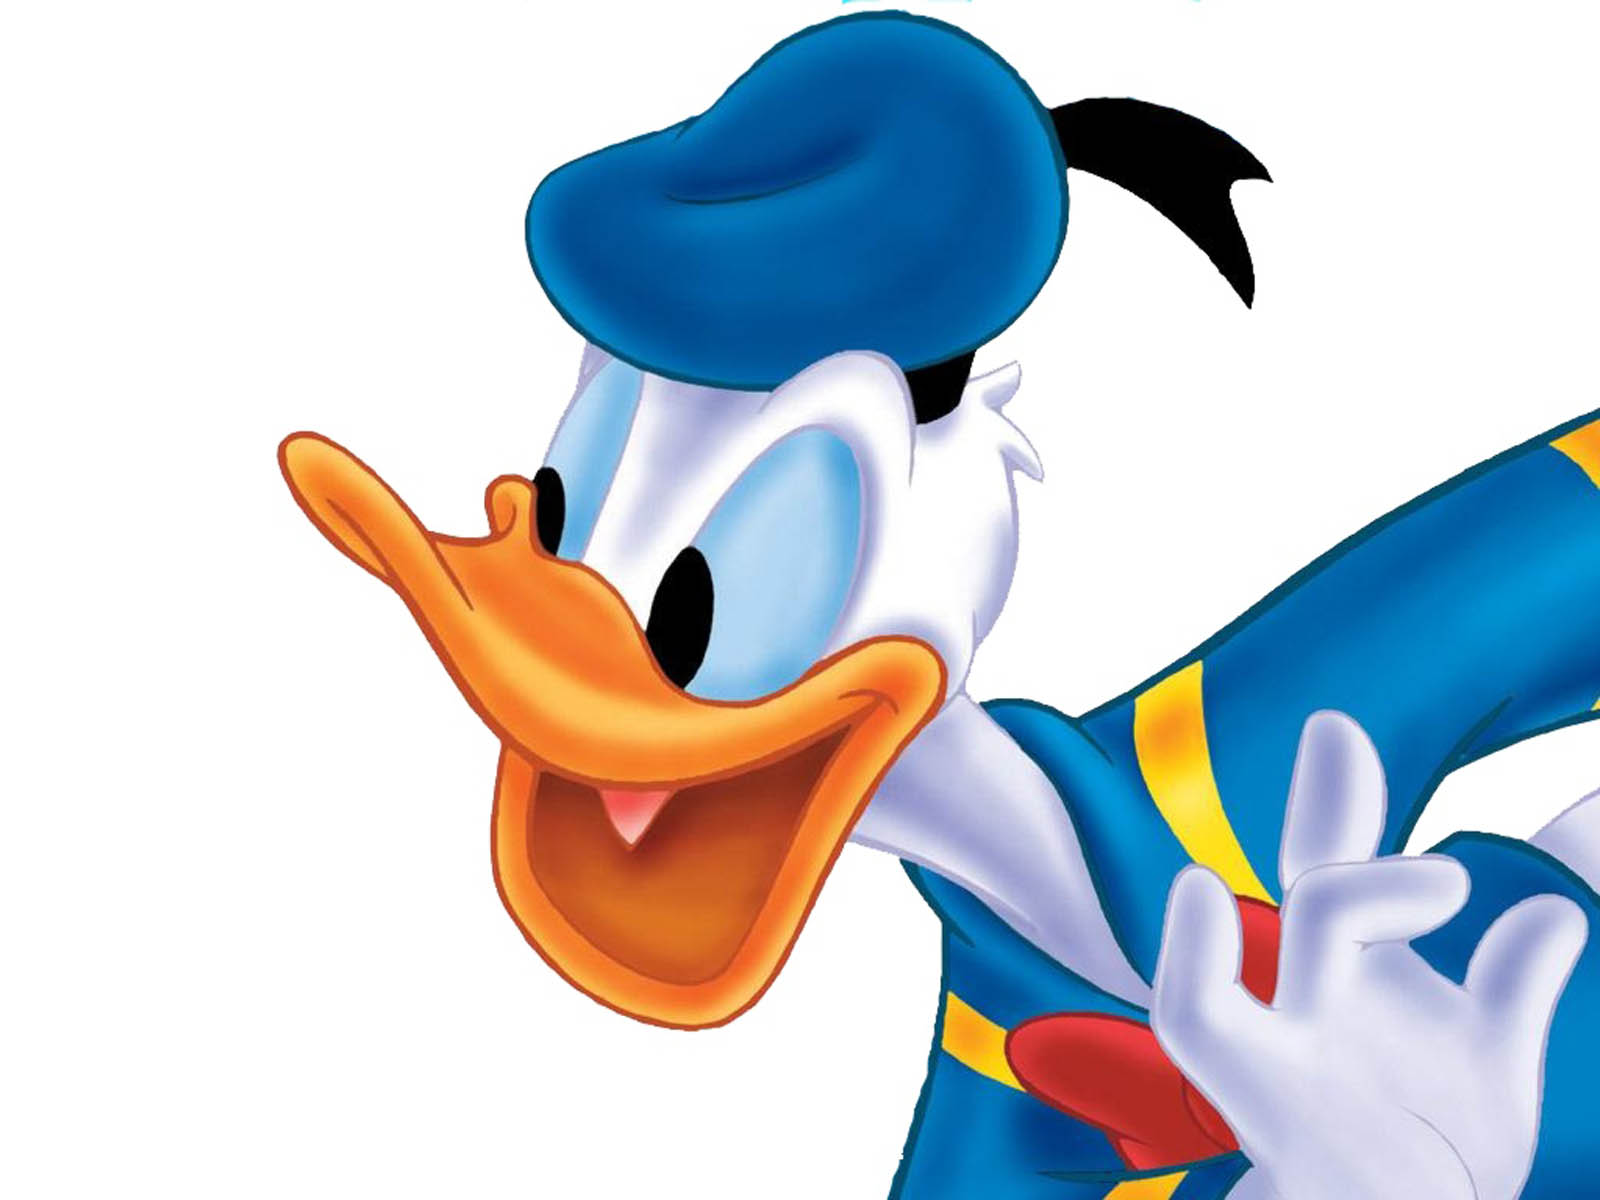 Donald duck hd images - photo#1